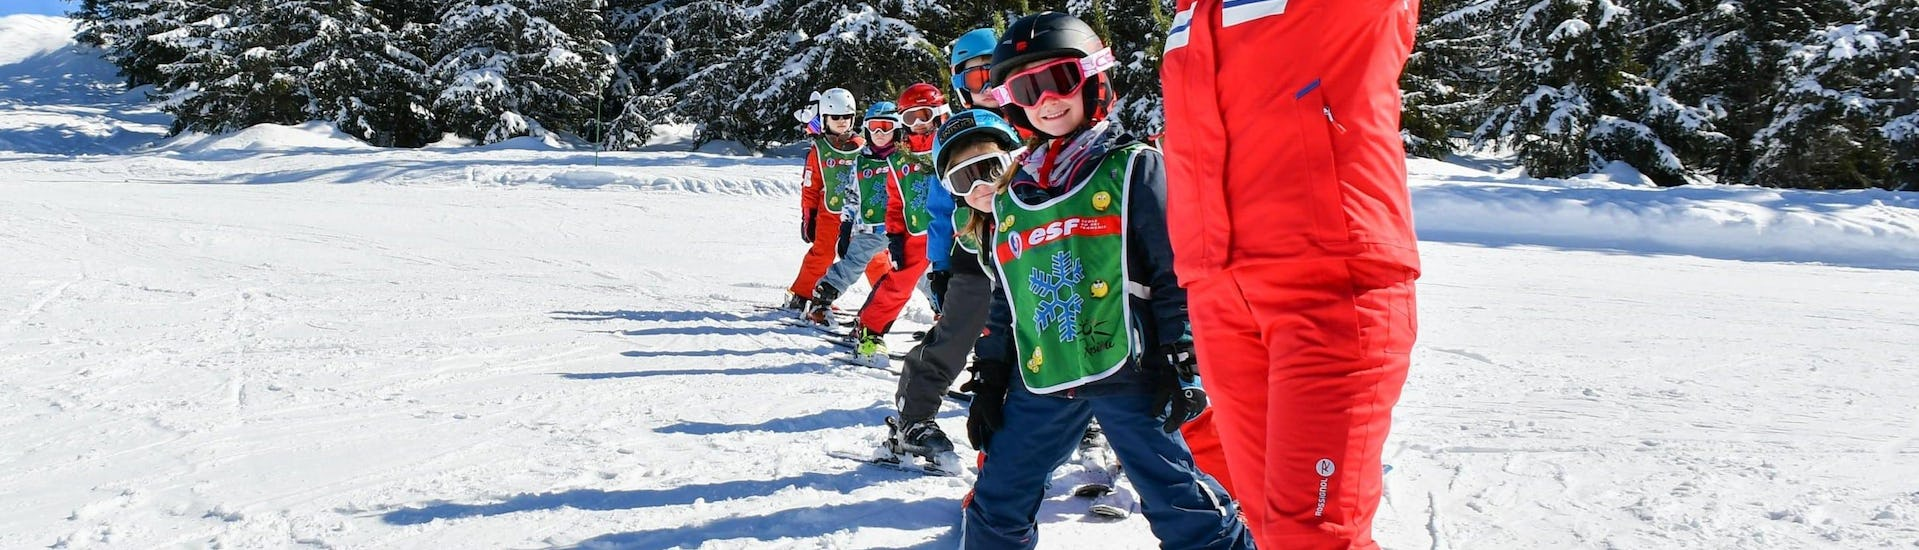 Kids Ski Lessons (5-13 years) - All Levels